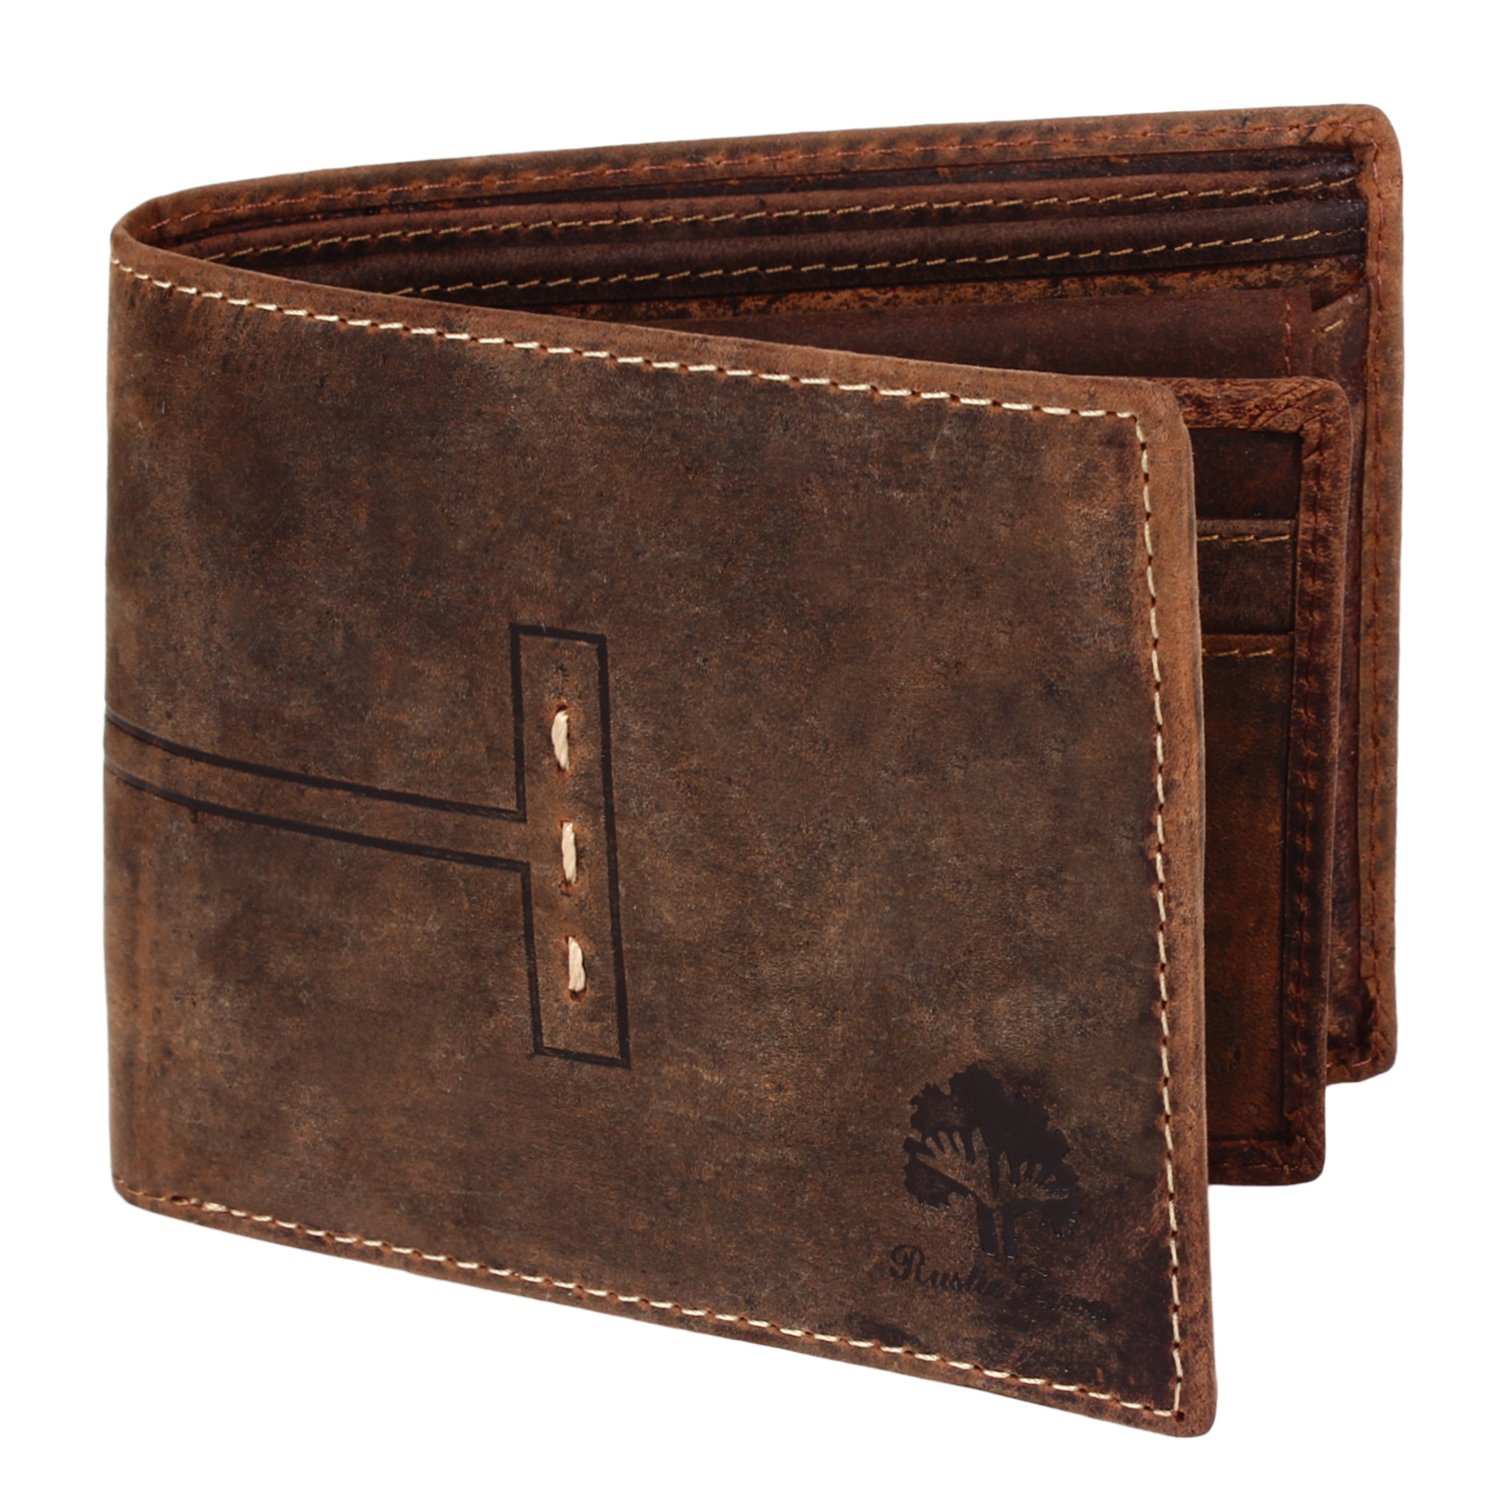 Handmade RFID Blocking Genuine Leather Bifold Wallets with Coin Pocket Designer Engraved Fashion with Card Pockets for Billfolds Cash By Rustic Town ~ Gift for Teen Boys Girls Men Women (Dark Brown)